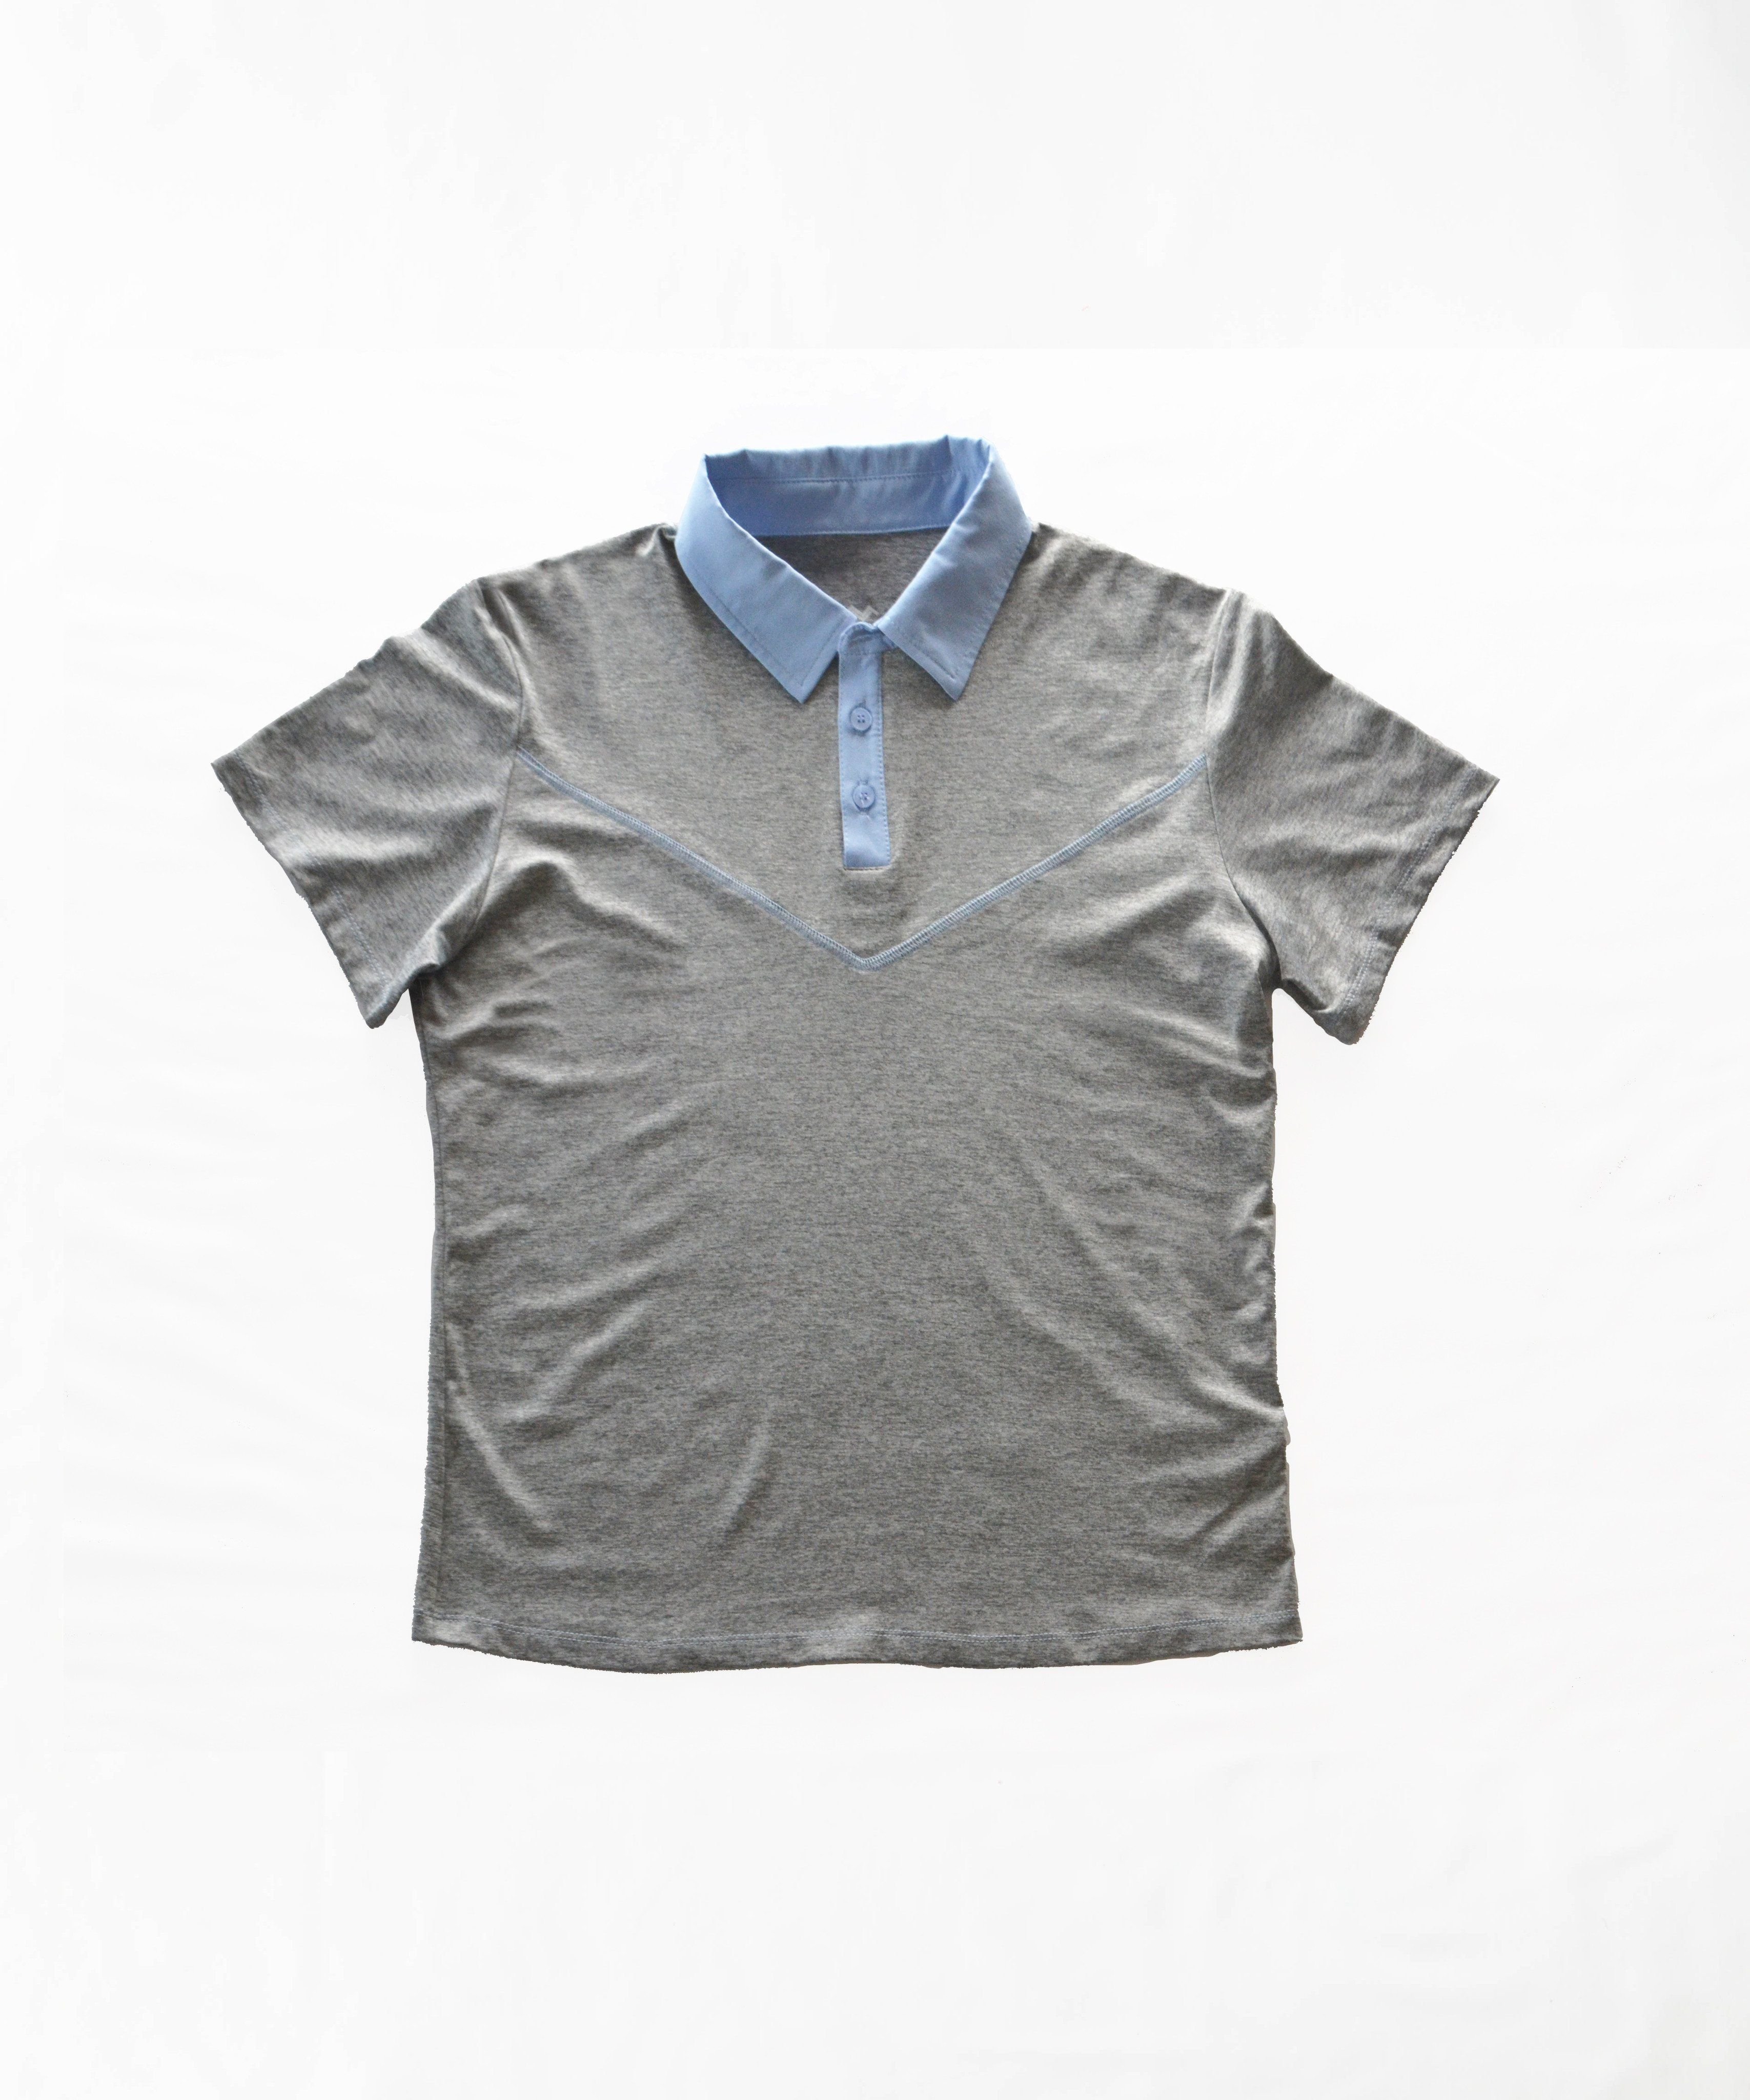 a355978d Short Sleeve Polo with front V seam. Scout Sports Logo in light gray  printed on center back below the collar. Details Notes -Moisture wicking -2-way  stretch ...